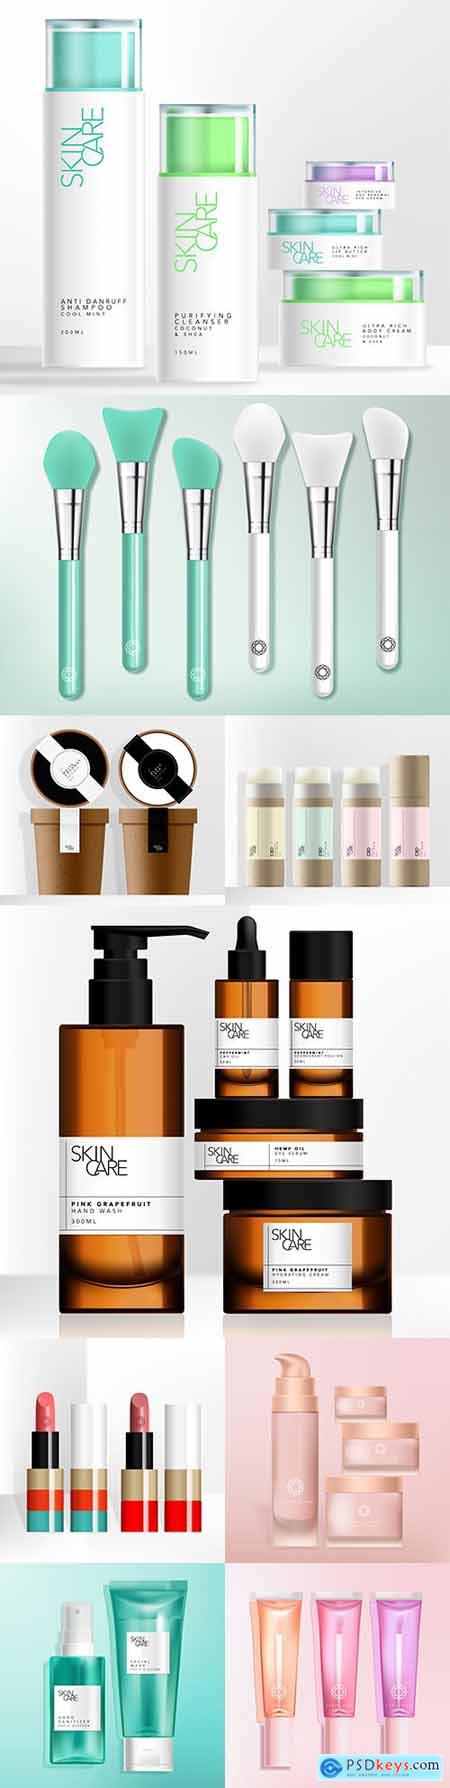 Silicone brush and plastic cans skin and cosmetics care